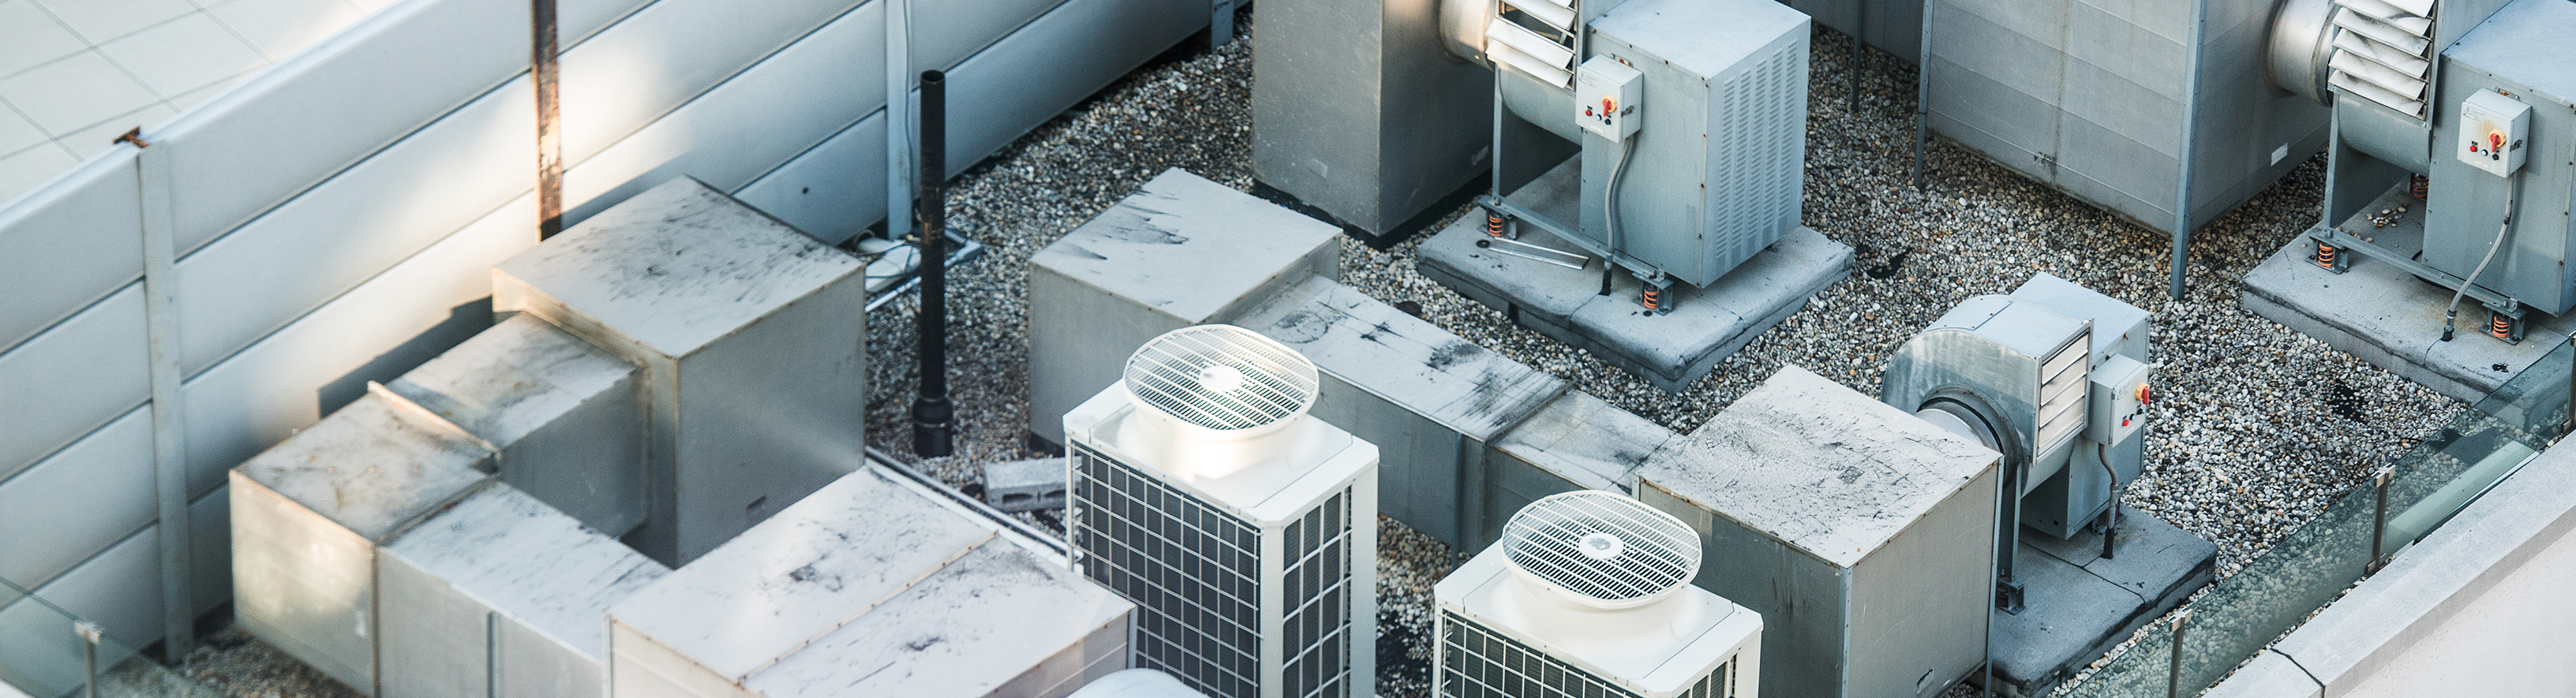 Commercial HVAC news: What you need to know about the R-22 phase-out